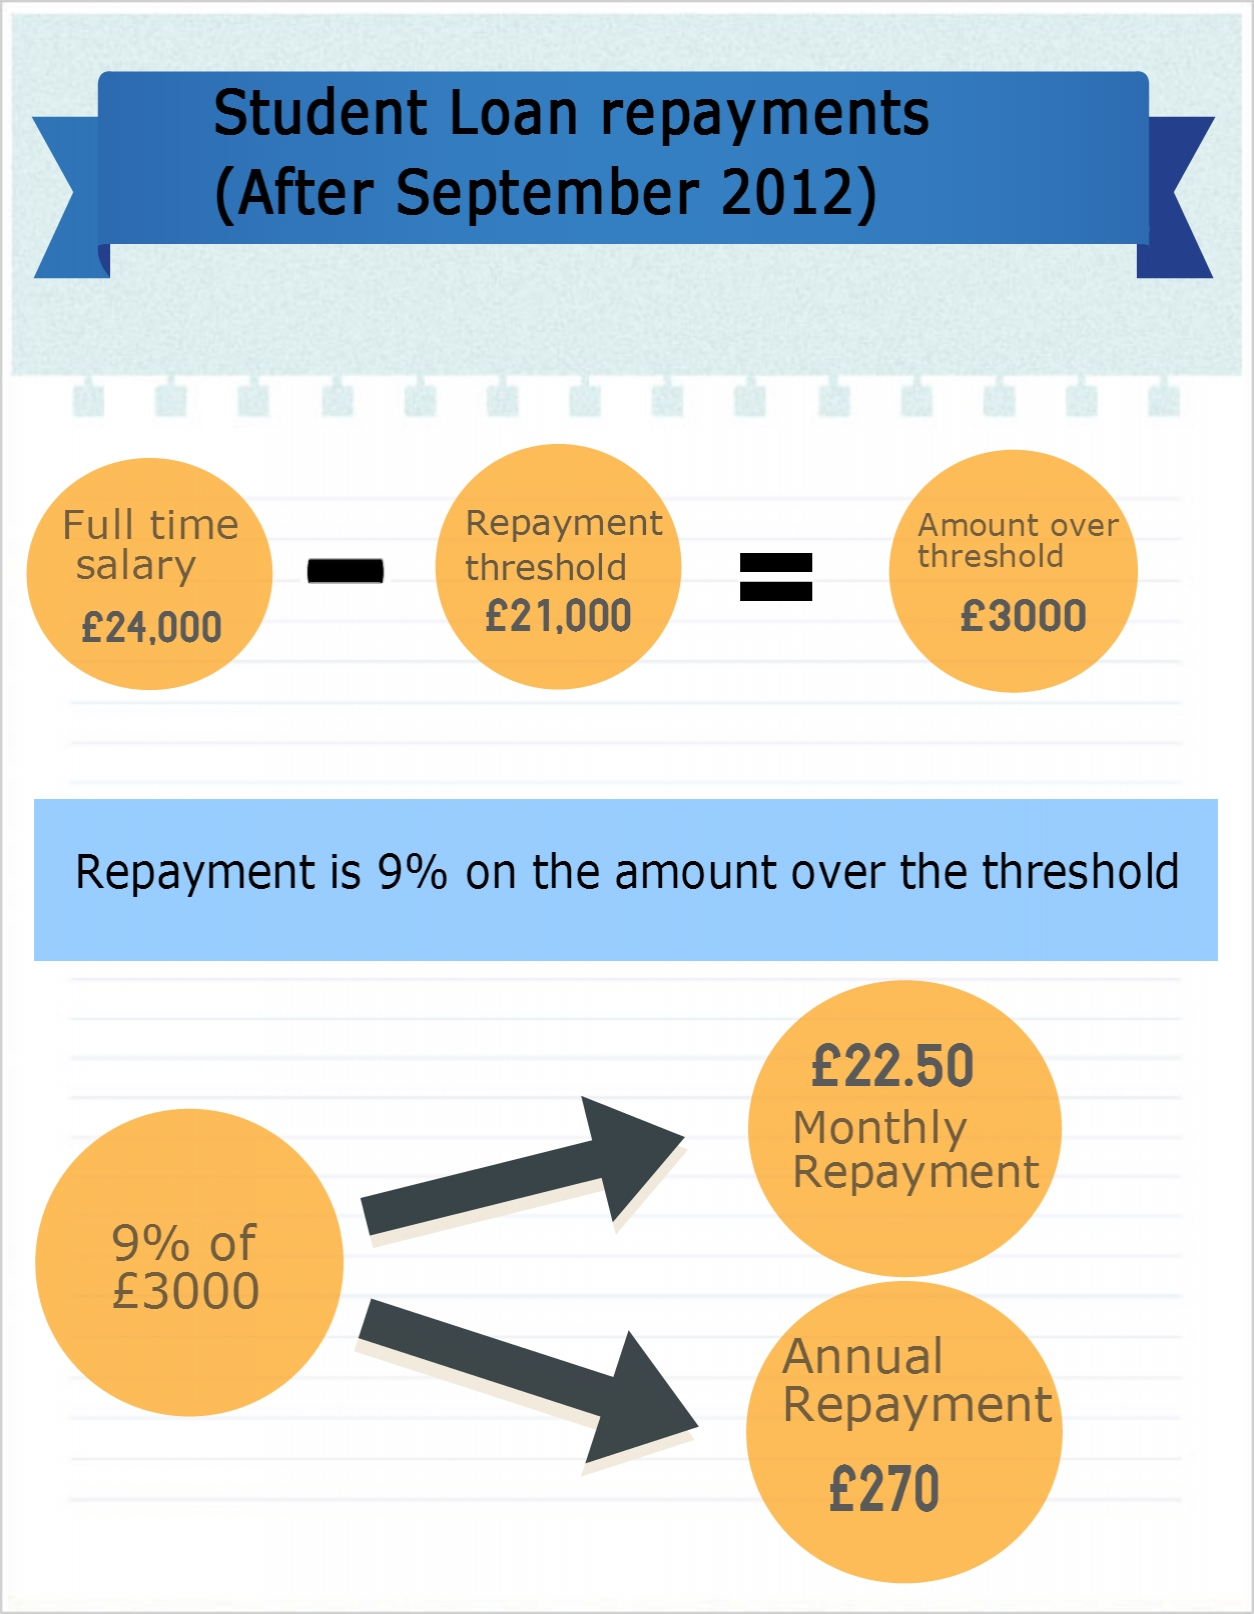 Student Loan repayments post-September 2012